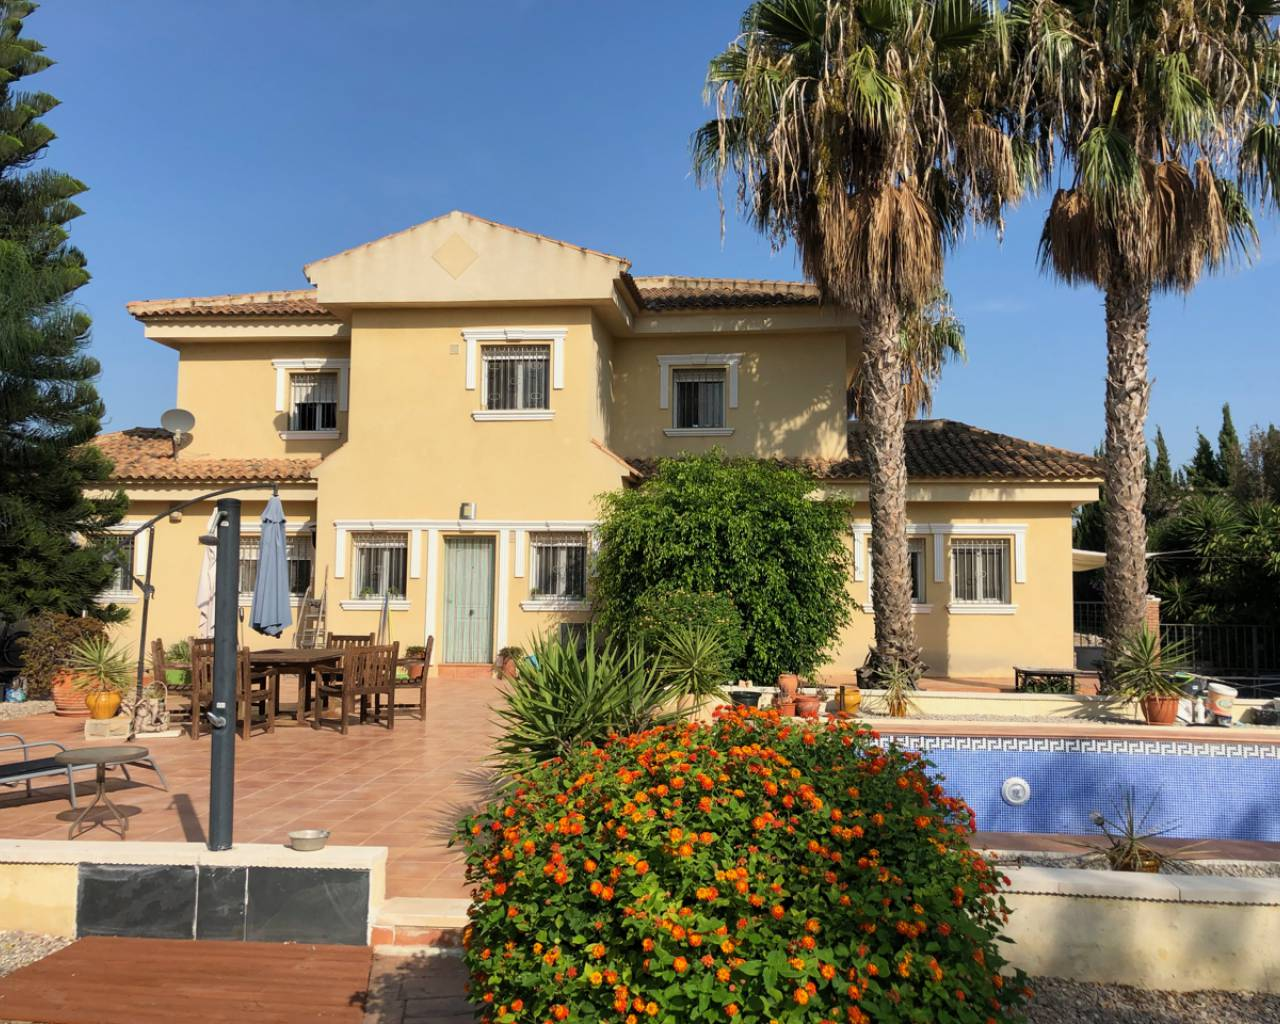 Reventa - Country Property - Almoradi